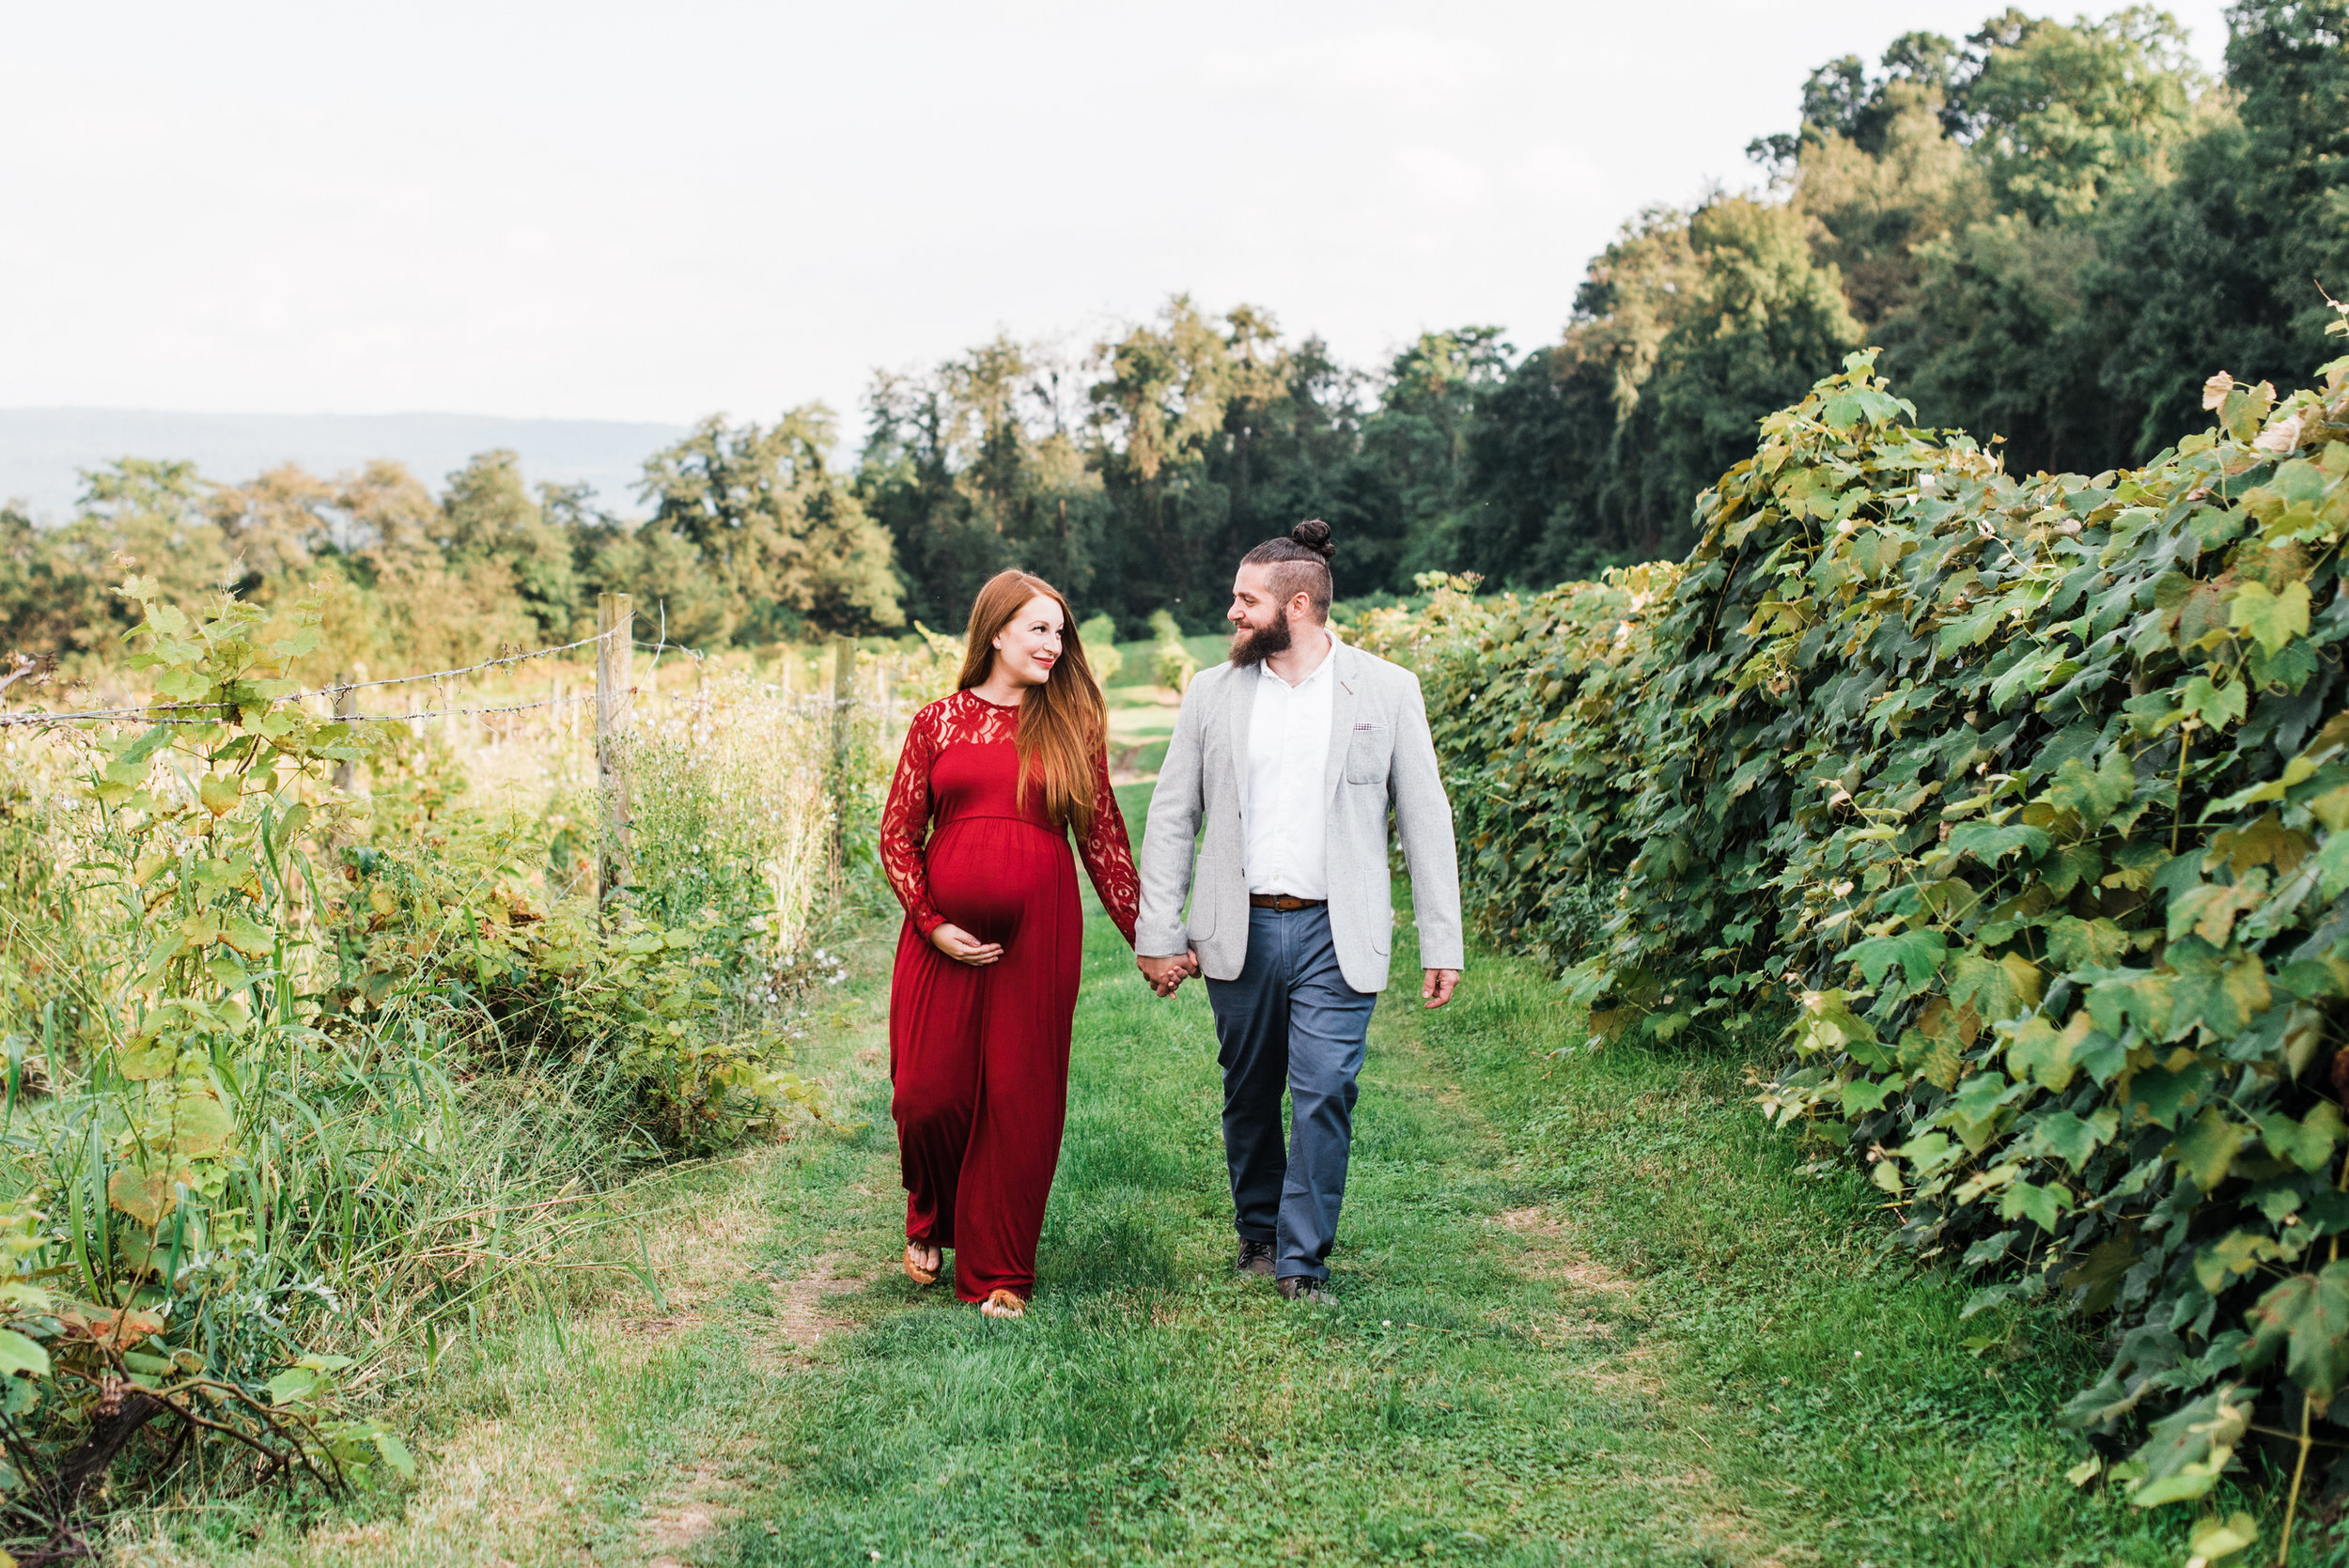 pittsburgh-maternity-photographers-winery-apple-orchard-session_13.jpg